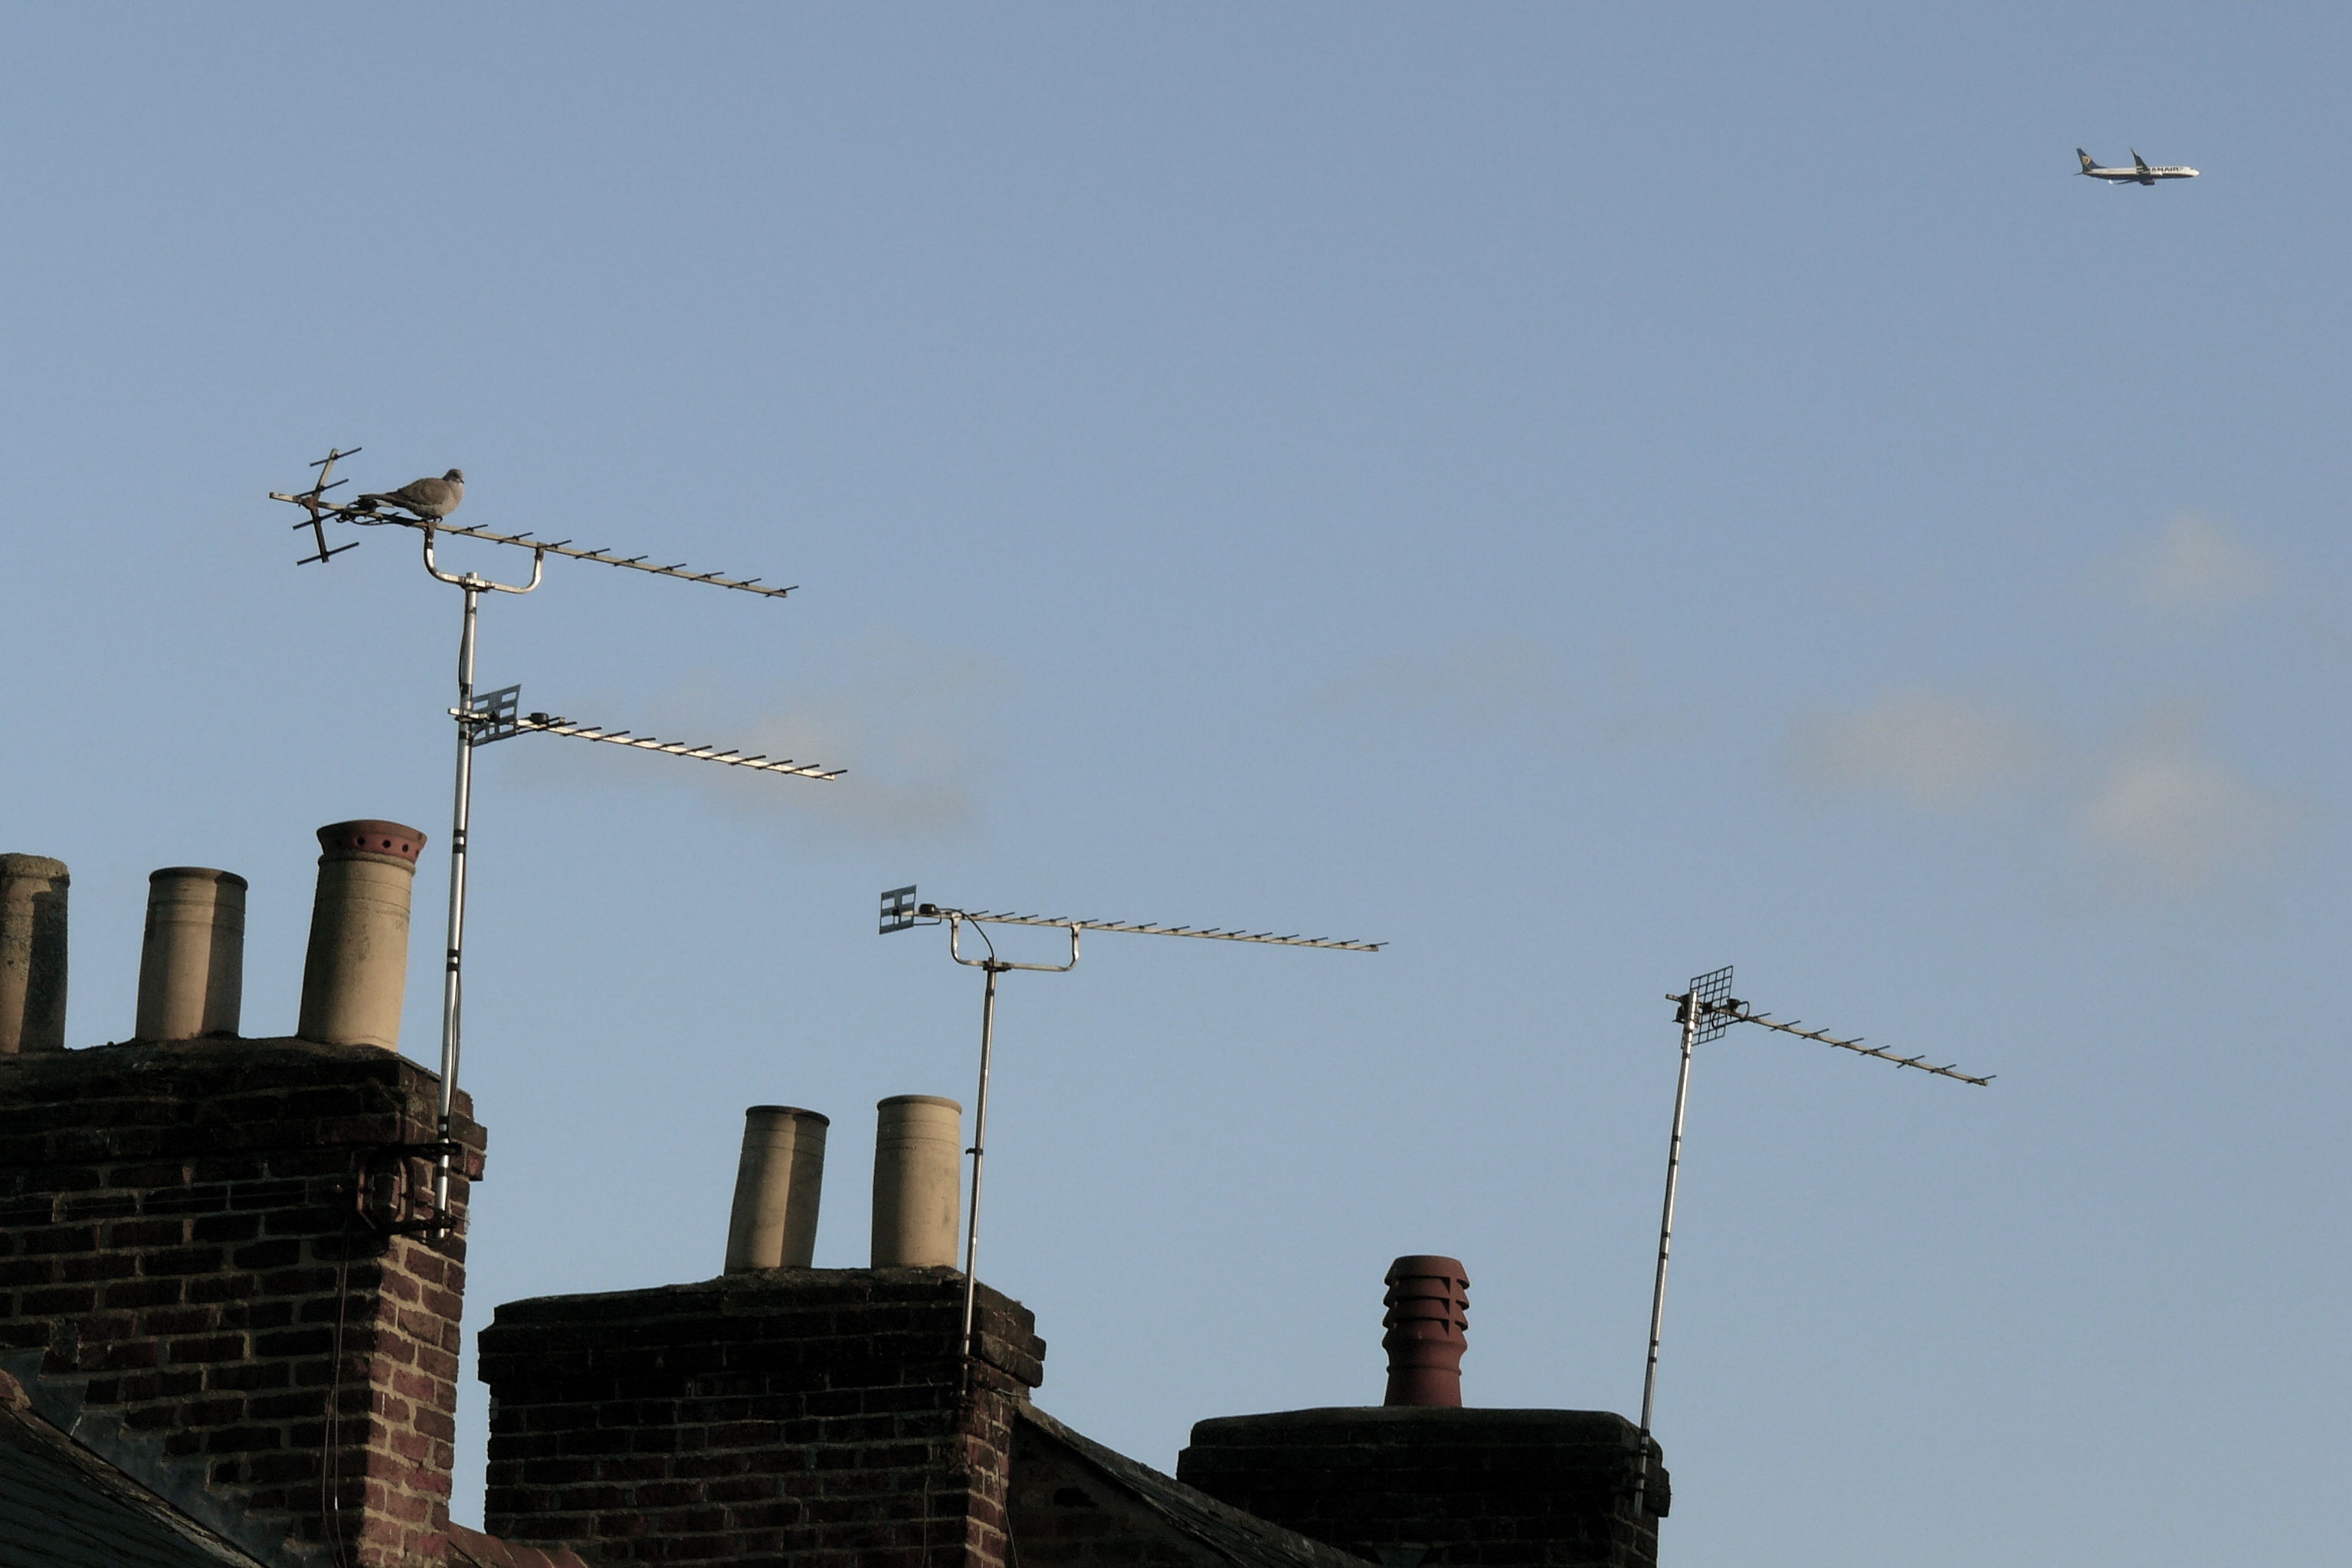 television_aerials_mounted_on_chimneys.jpg